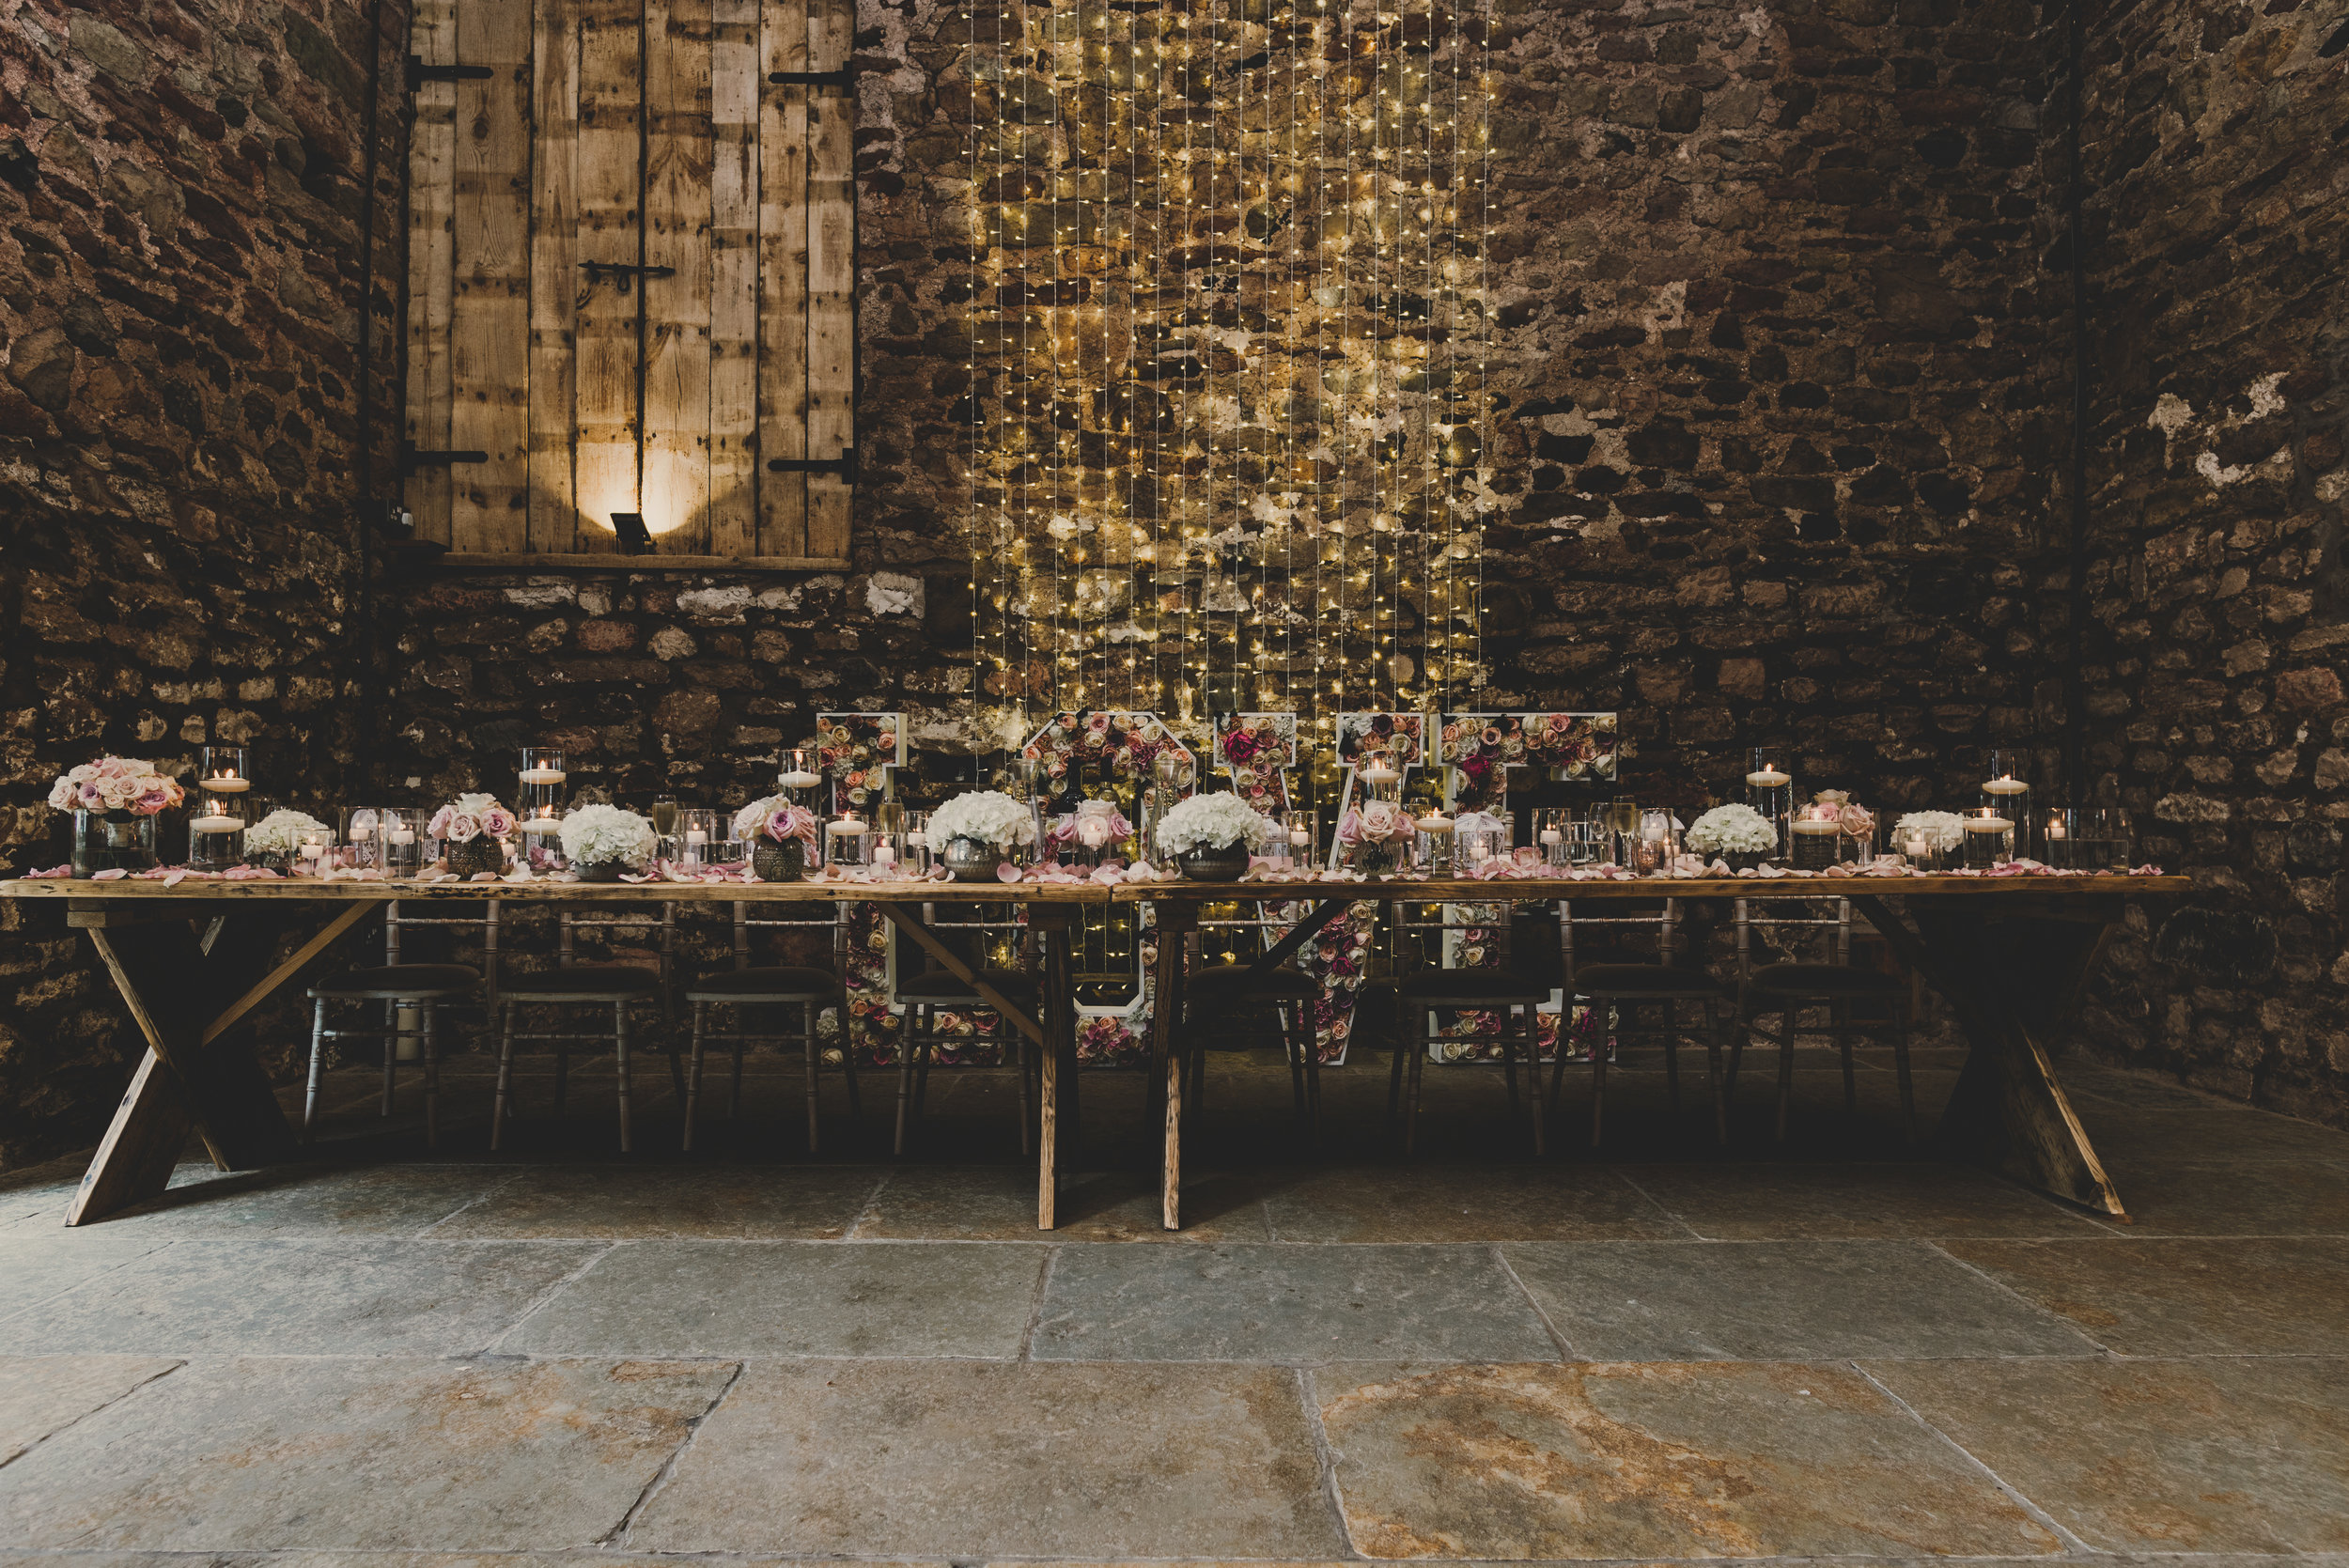 london-wedding-photographer-eden-wedding-barn-the-asylum-maverick-projects (19).jpg